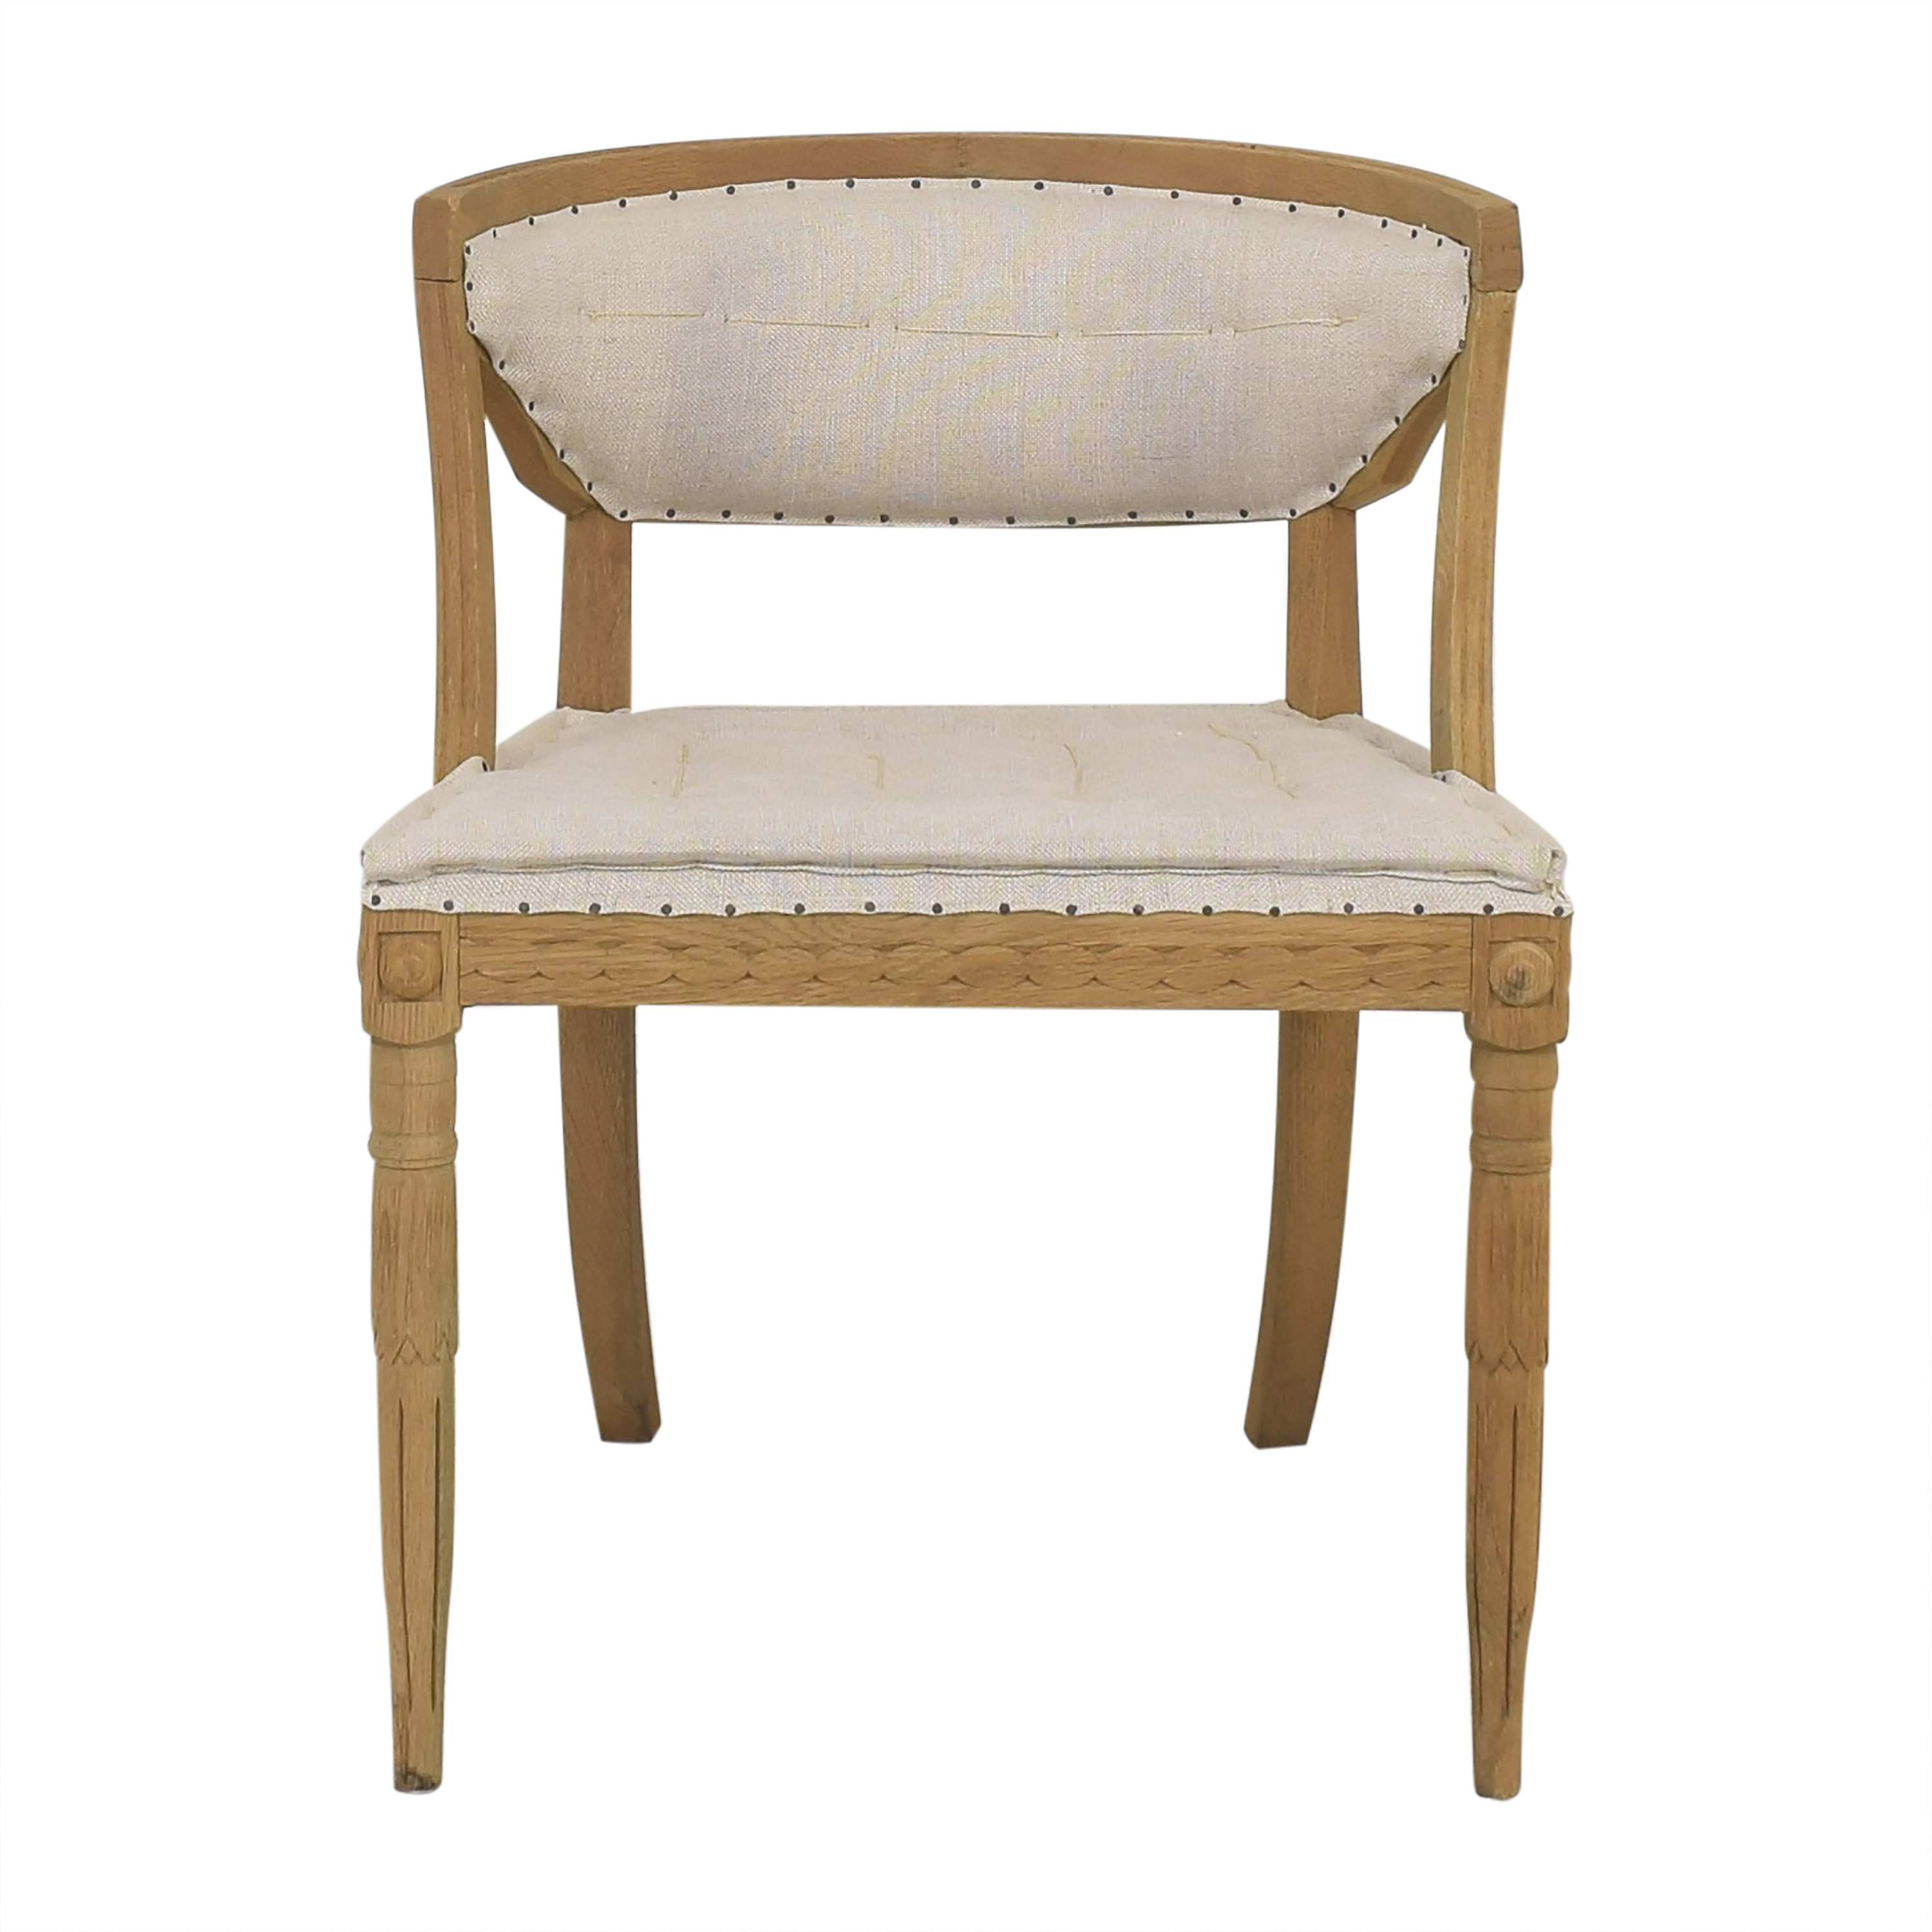 Restoration Hardware Restoration Hardware Upholstered Dining Chair dimensions